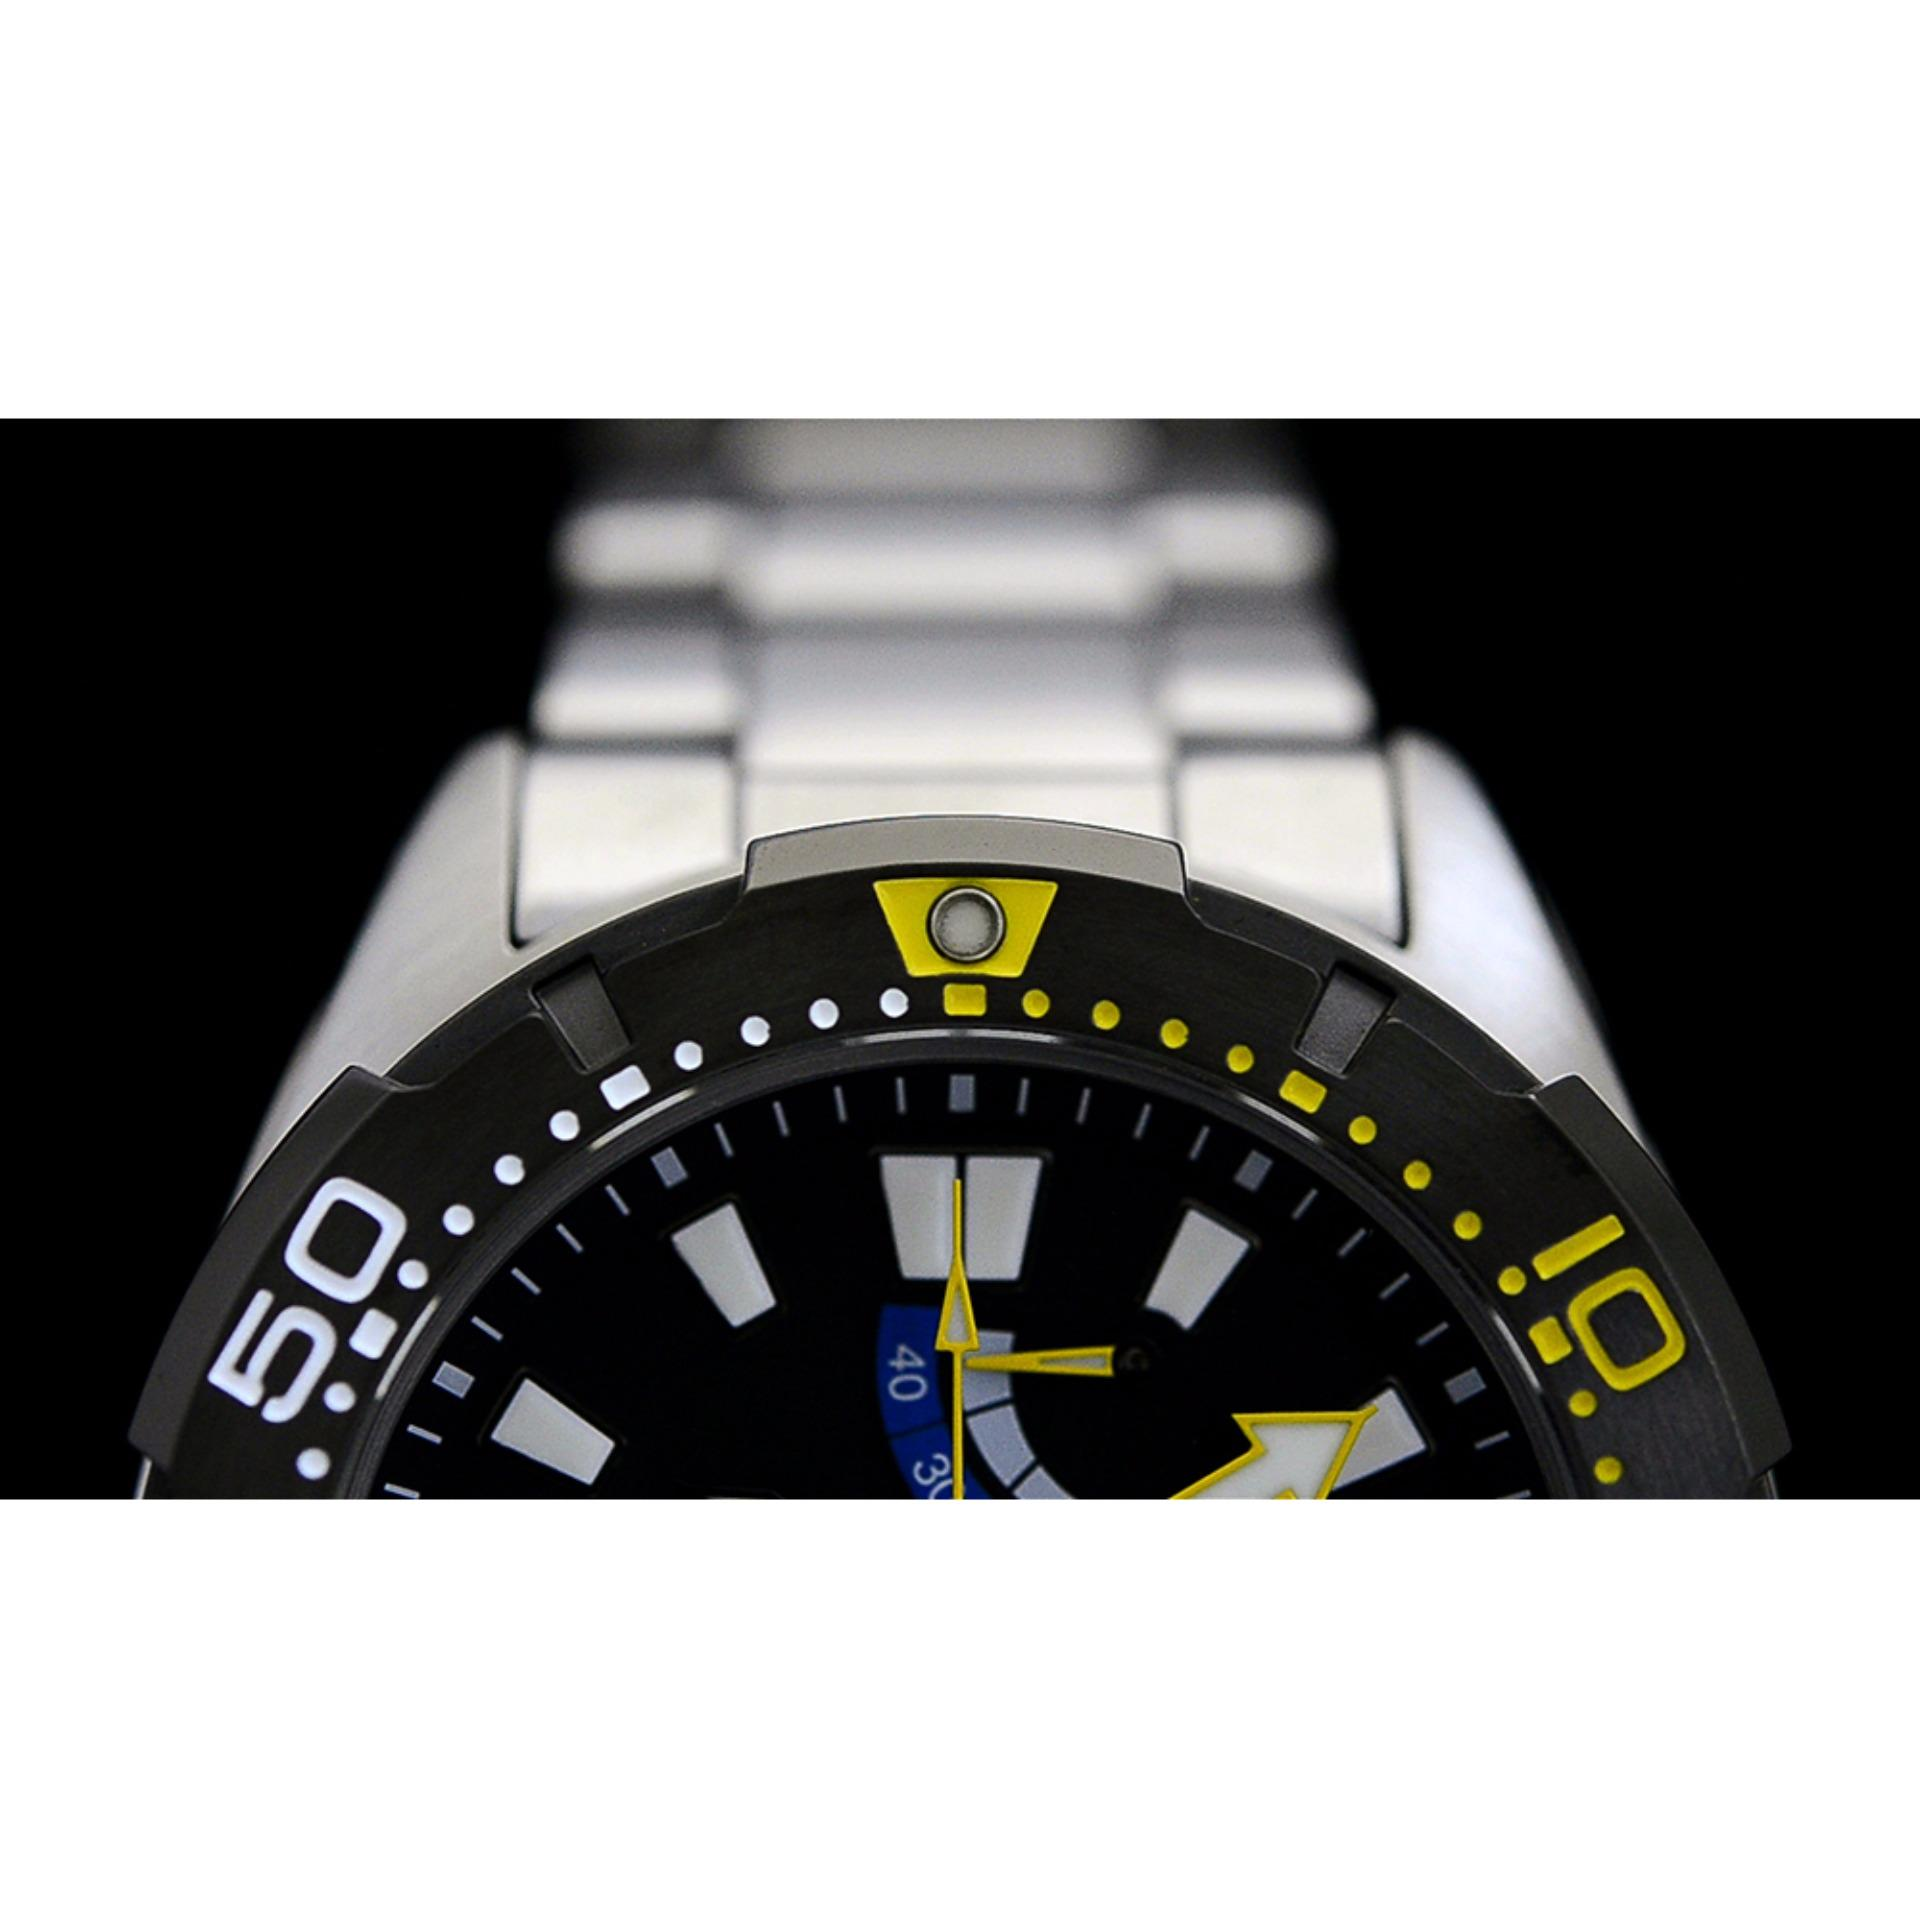 Orient Diving Sports Automatic M Force for Air Diving SEL0A001B0 Jam Tangan